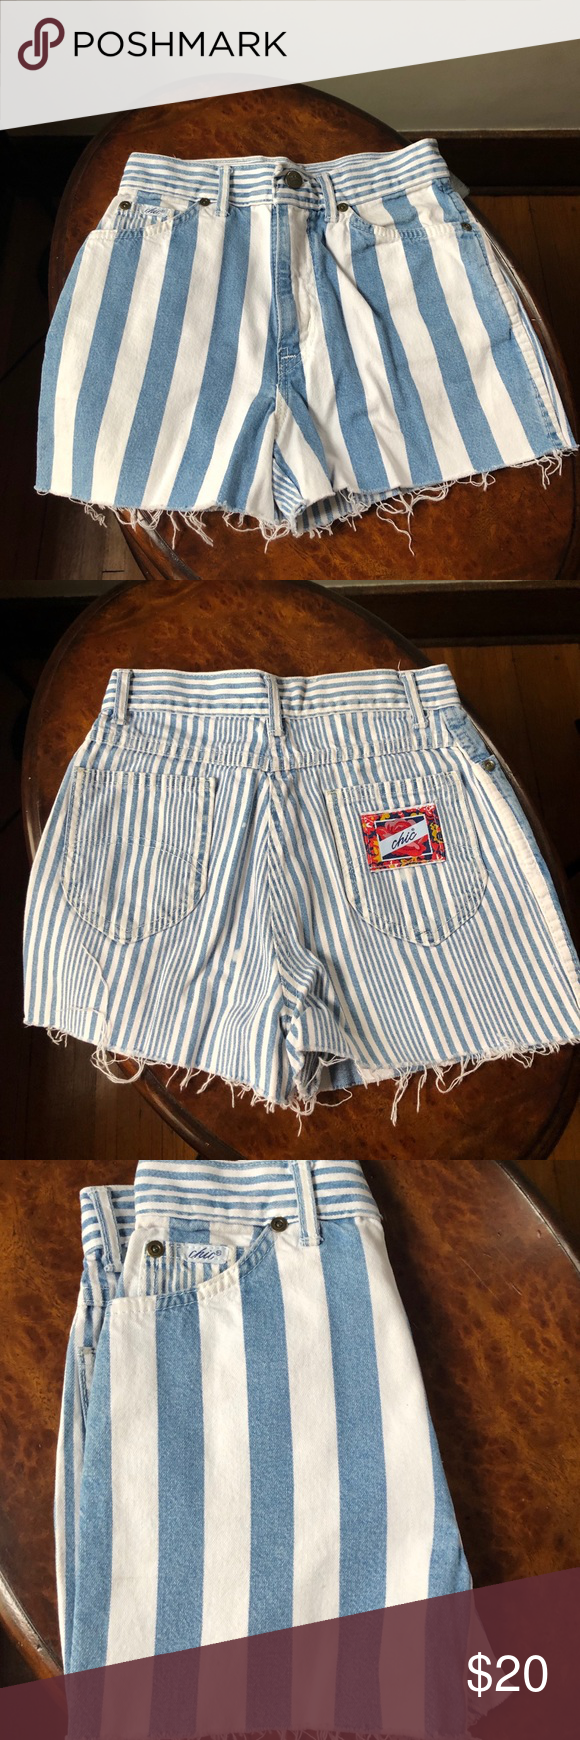 Striped Shorts 80s High Waist Denim Cutoff 90s XS Striped Shorts 80s Jeans High Waisted Denim Cutoff 90s White Blue Vintage XS Vintage 80s 90s cutoff shorts by Chic in blue and white striped denim. high waist, raw cut off hem.  model is 5'7 and measures 32-24-35. Best fits: Extra Small Condition: Very good vintage (light general wear) – some fraying at the bottom, a few bleach spots Material: Denim  Taken from seam to seam while the garment is lying flat. Double the armpit, waist, and hips. Wai #denimcutoffshorts